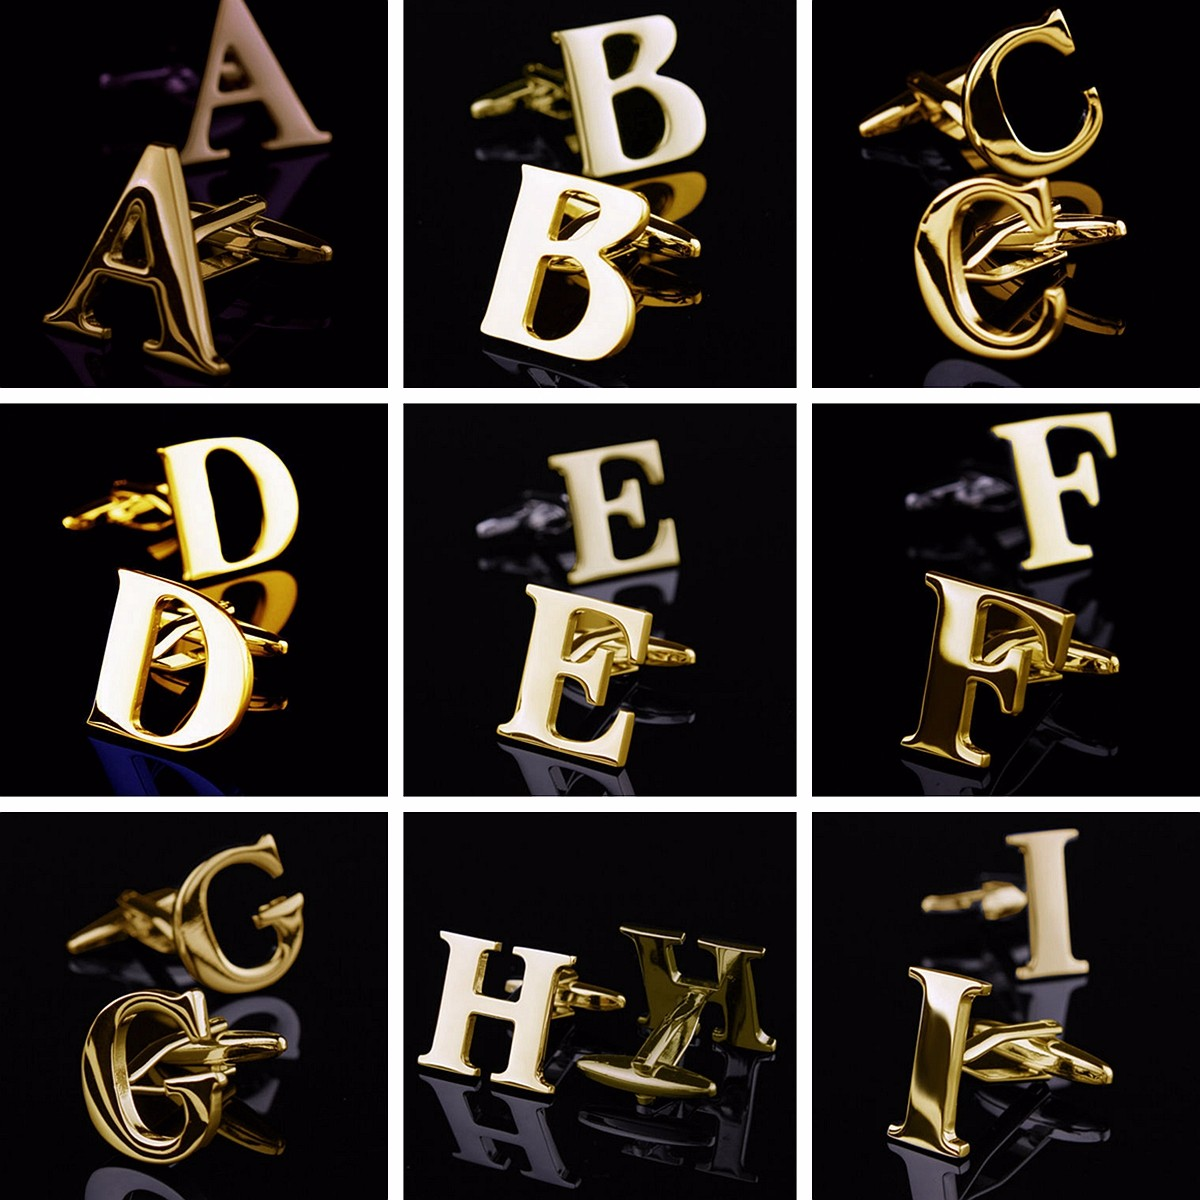 1 Inch Metal Letters Men Gold Initials Letters Cufflinks Vintage Stainless Steel